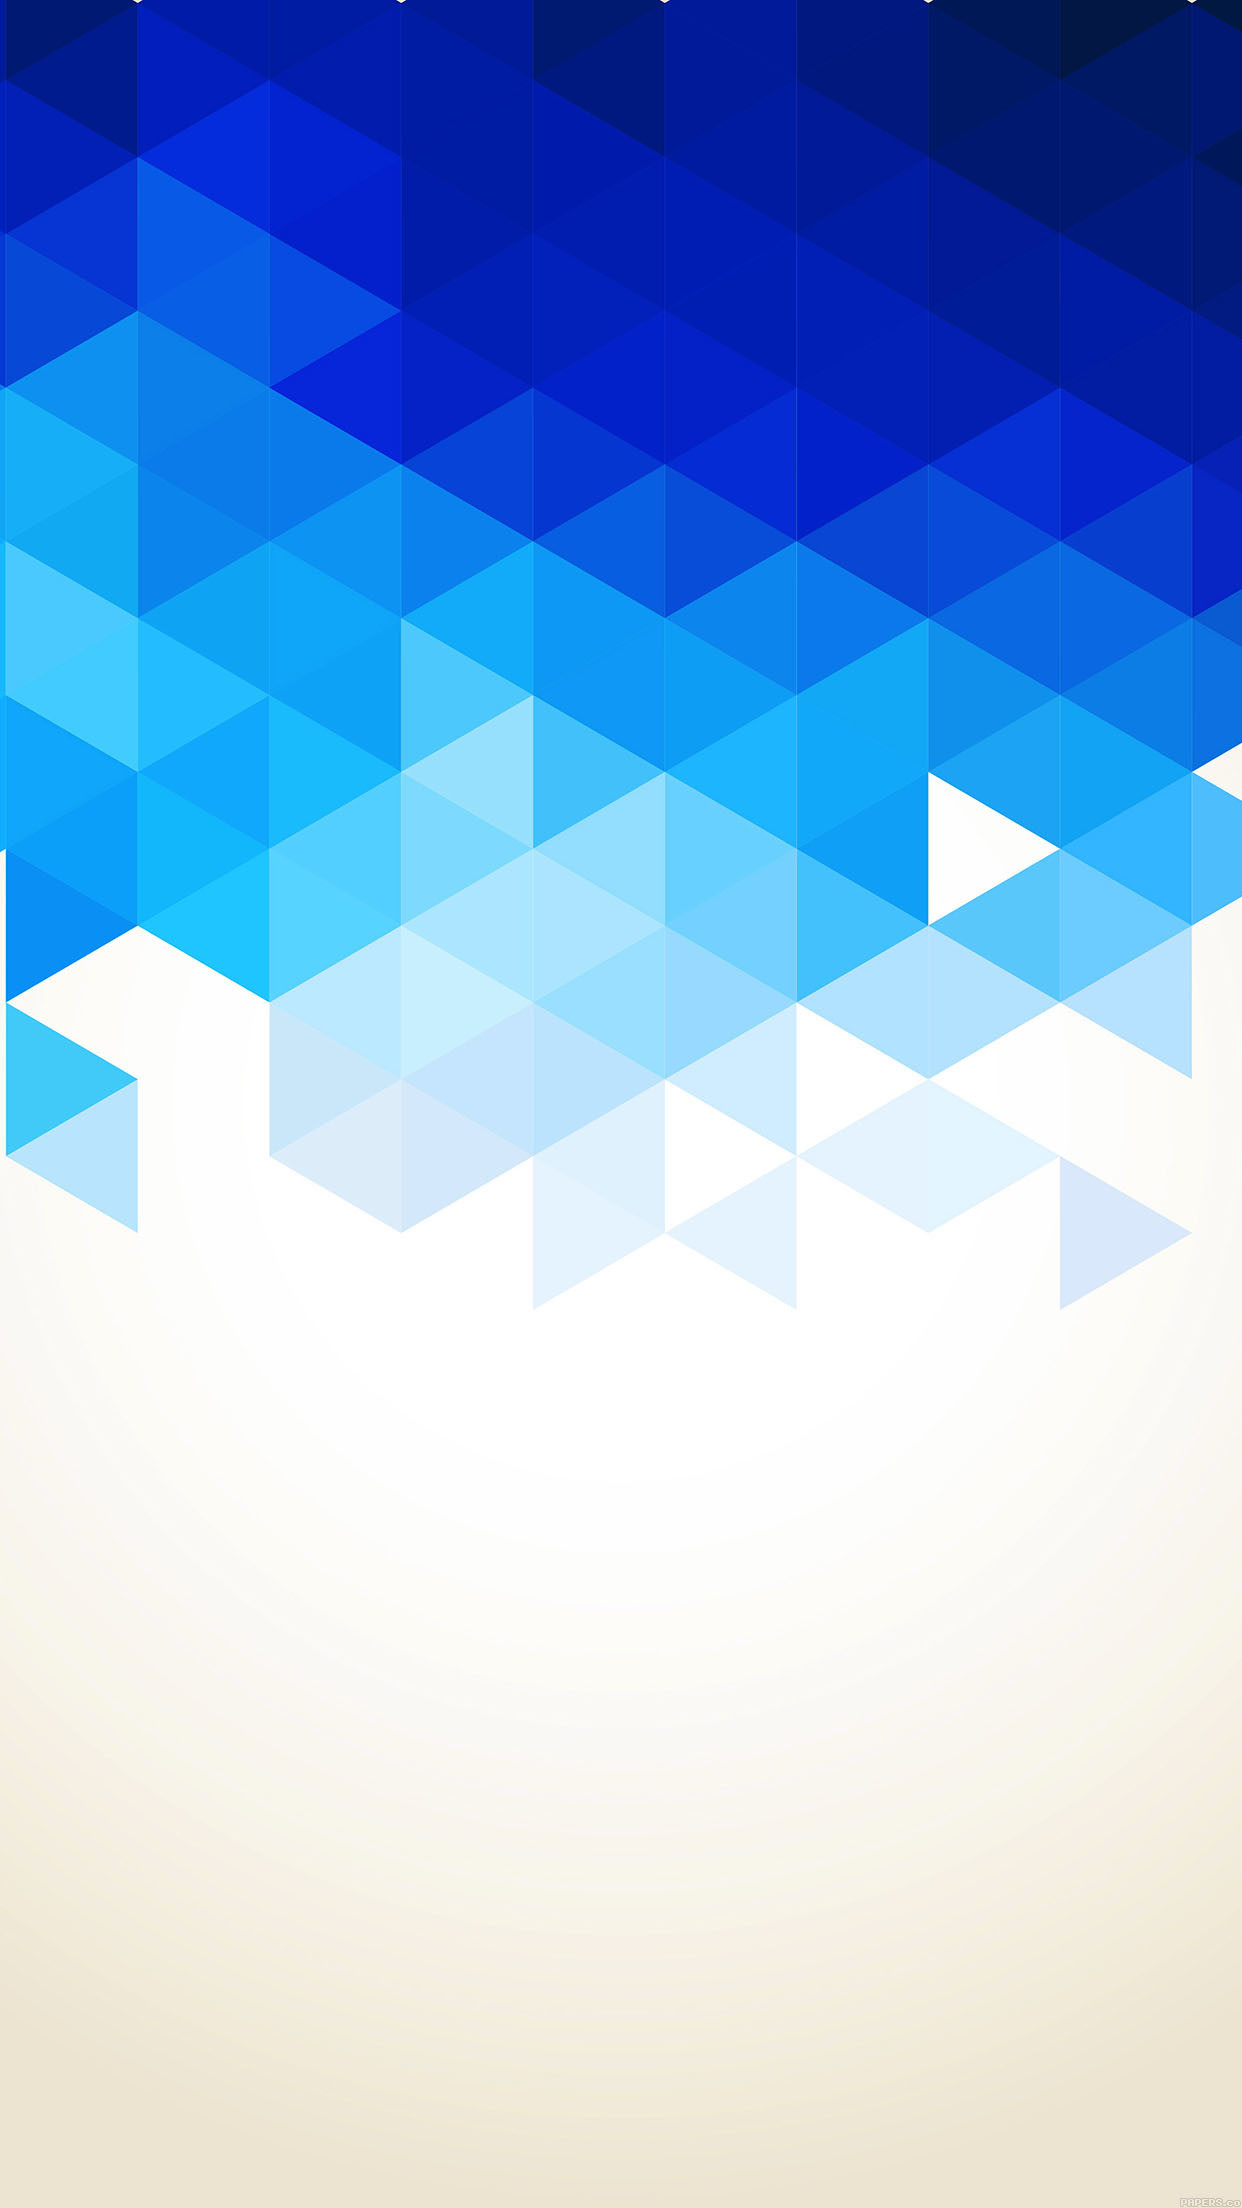 JomoJR blue apple iphone wallpaper hd abstract triangle background